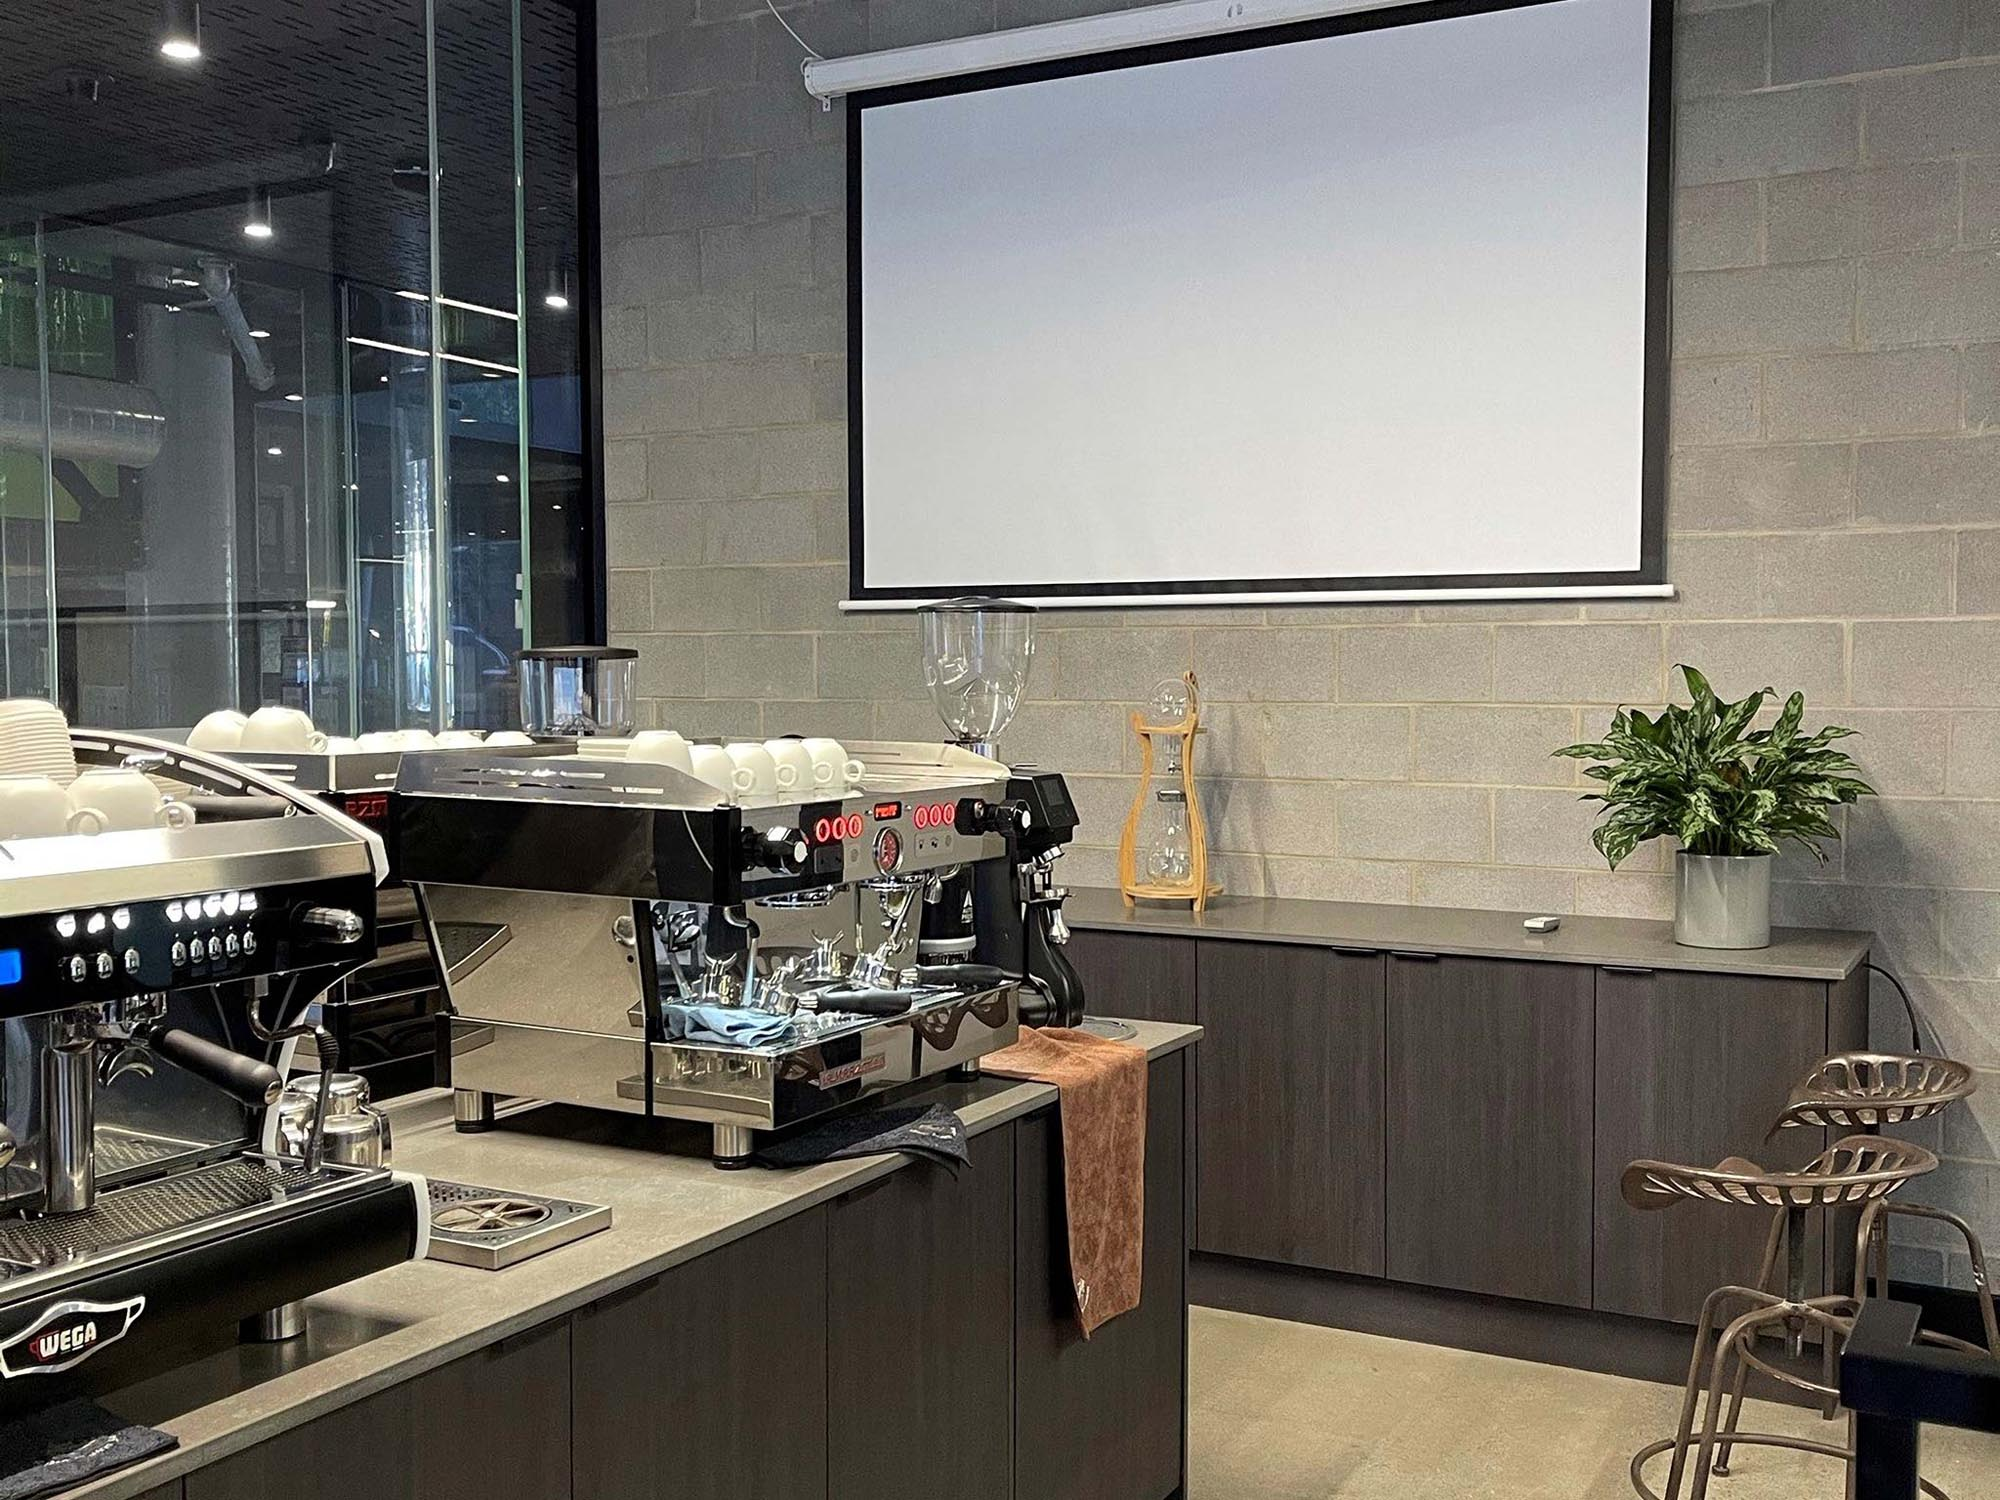 JD Coffee Show Room After